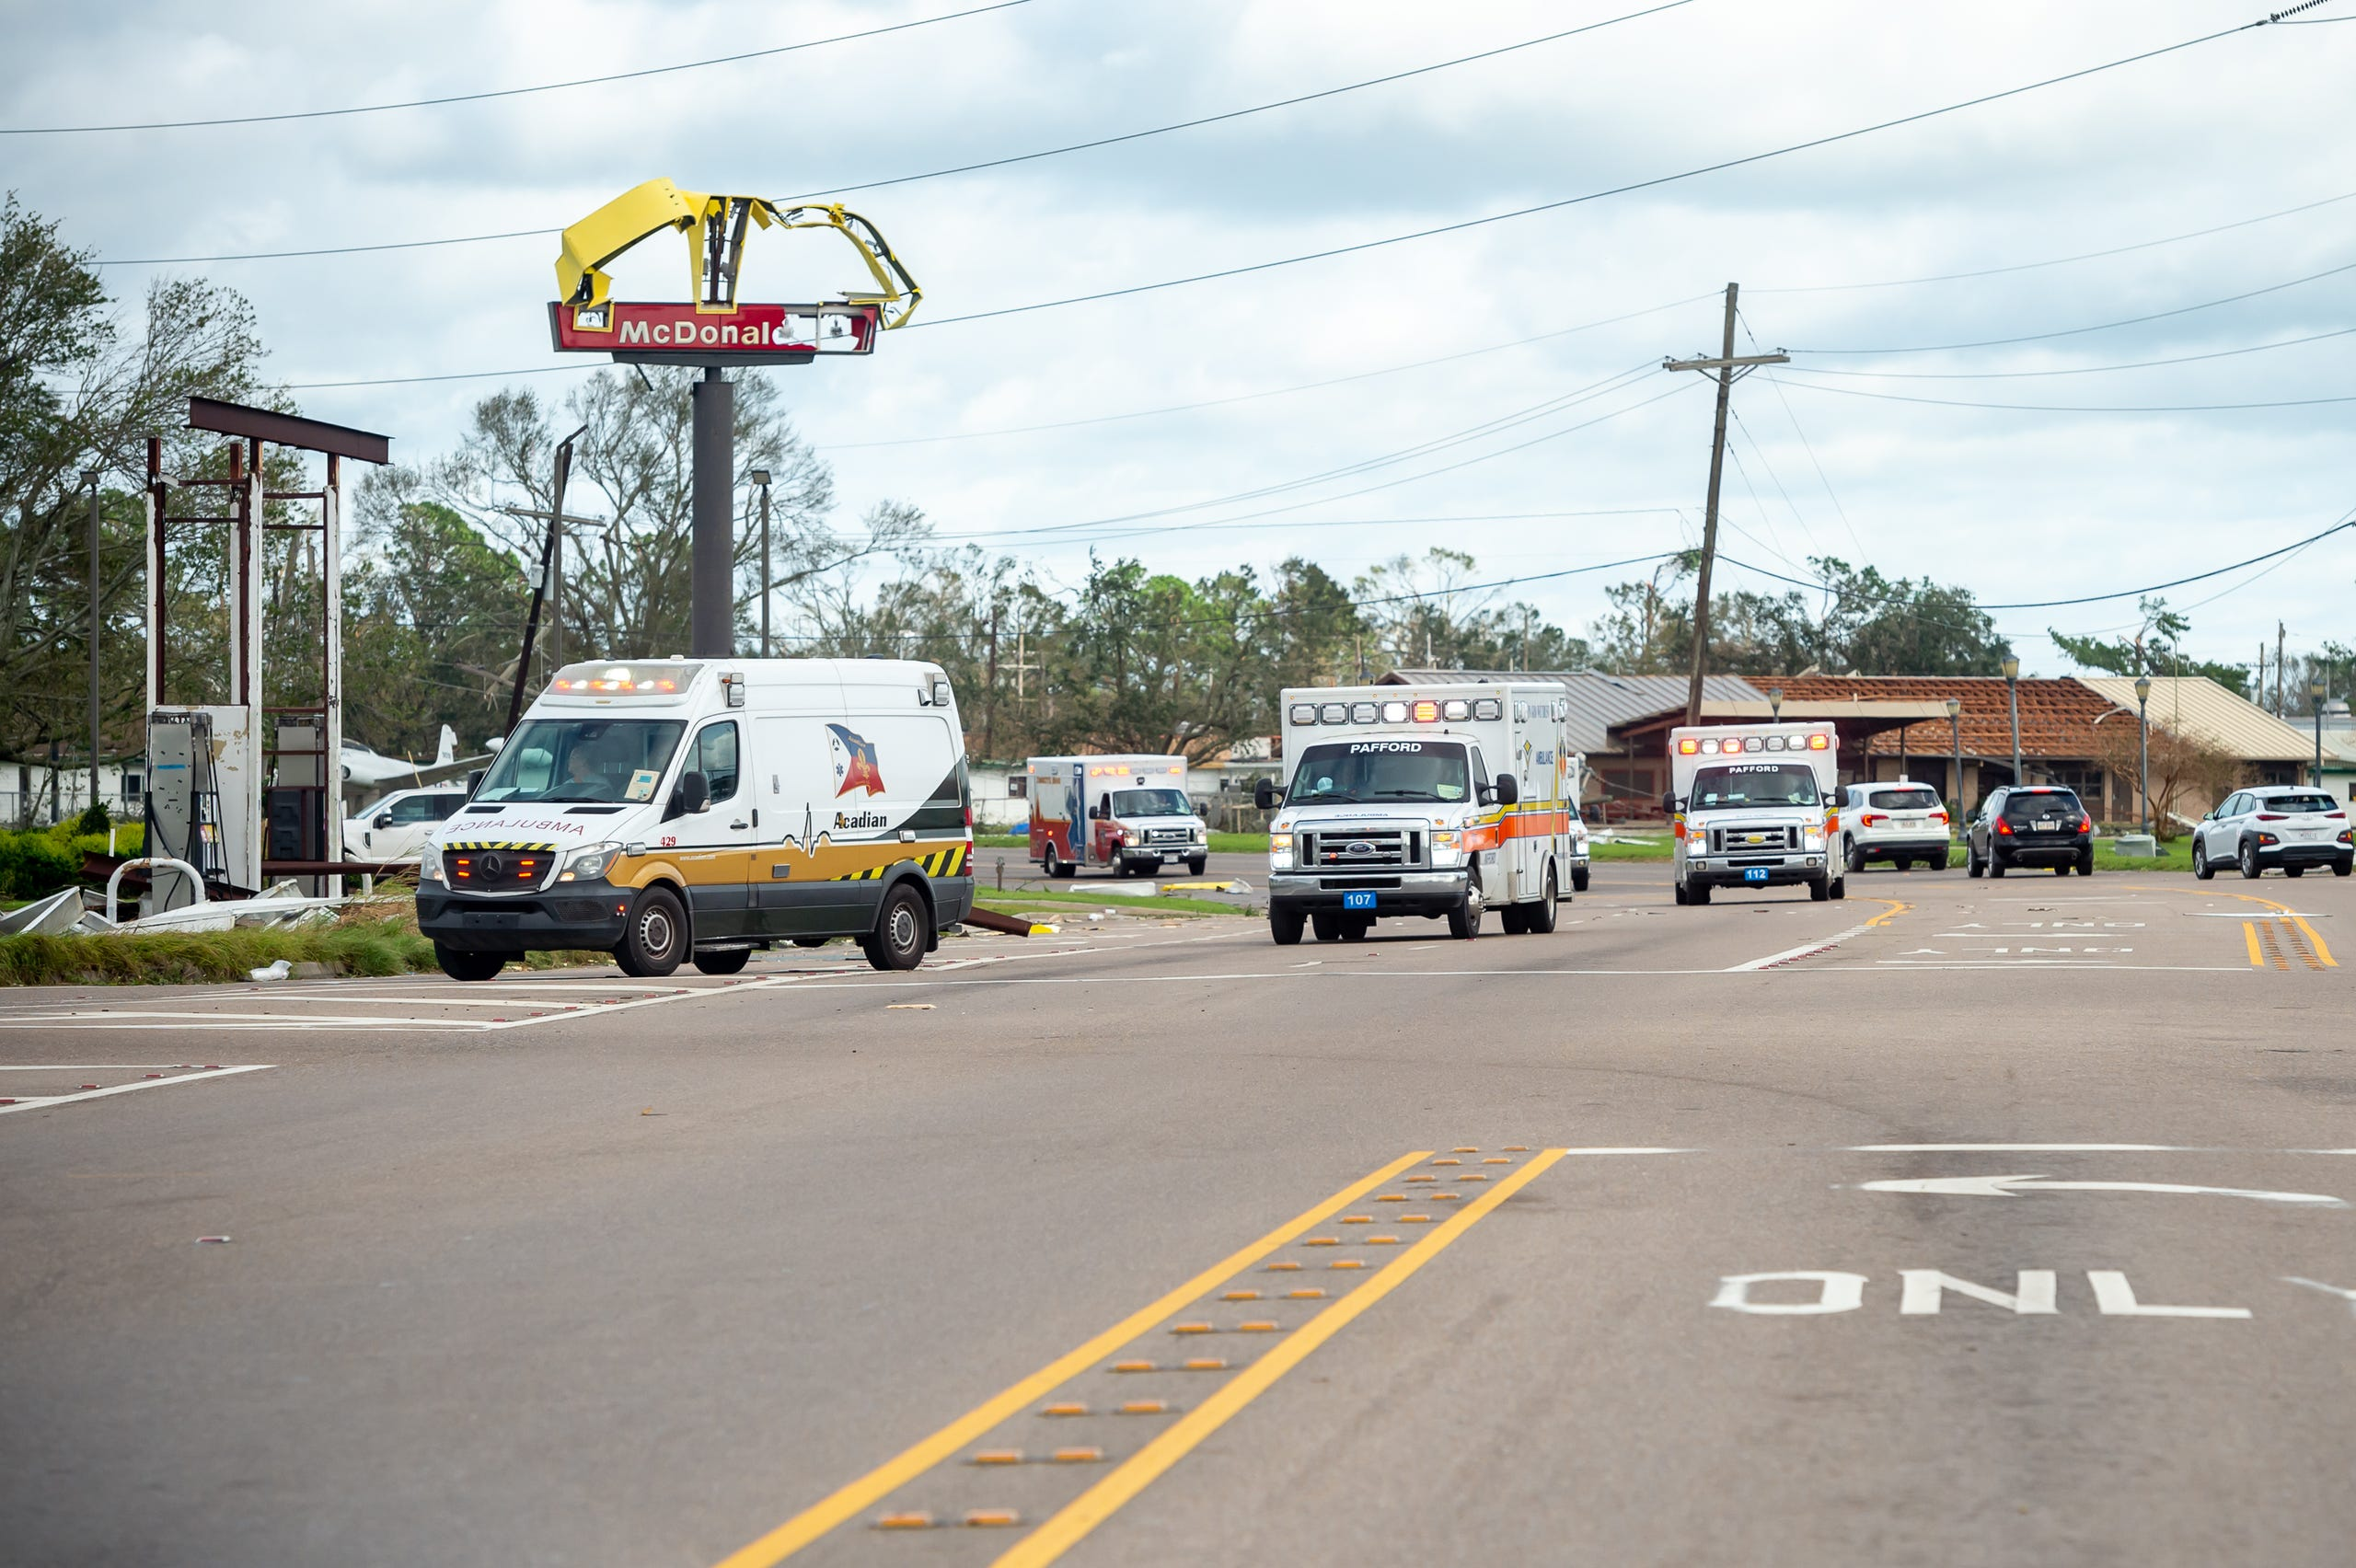 More than two dozen ambulances arrive at Chabert Medical Center to evacuate patients after Hurricane Ida in Houma, LA. Monday, Aug. 30, 2021.